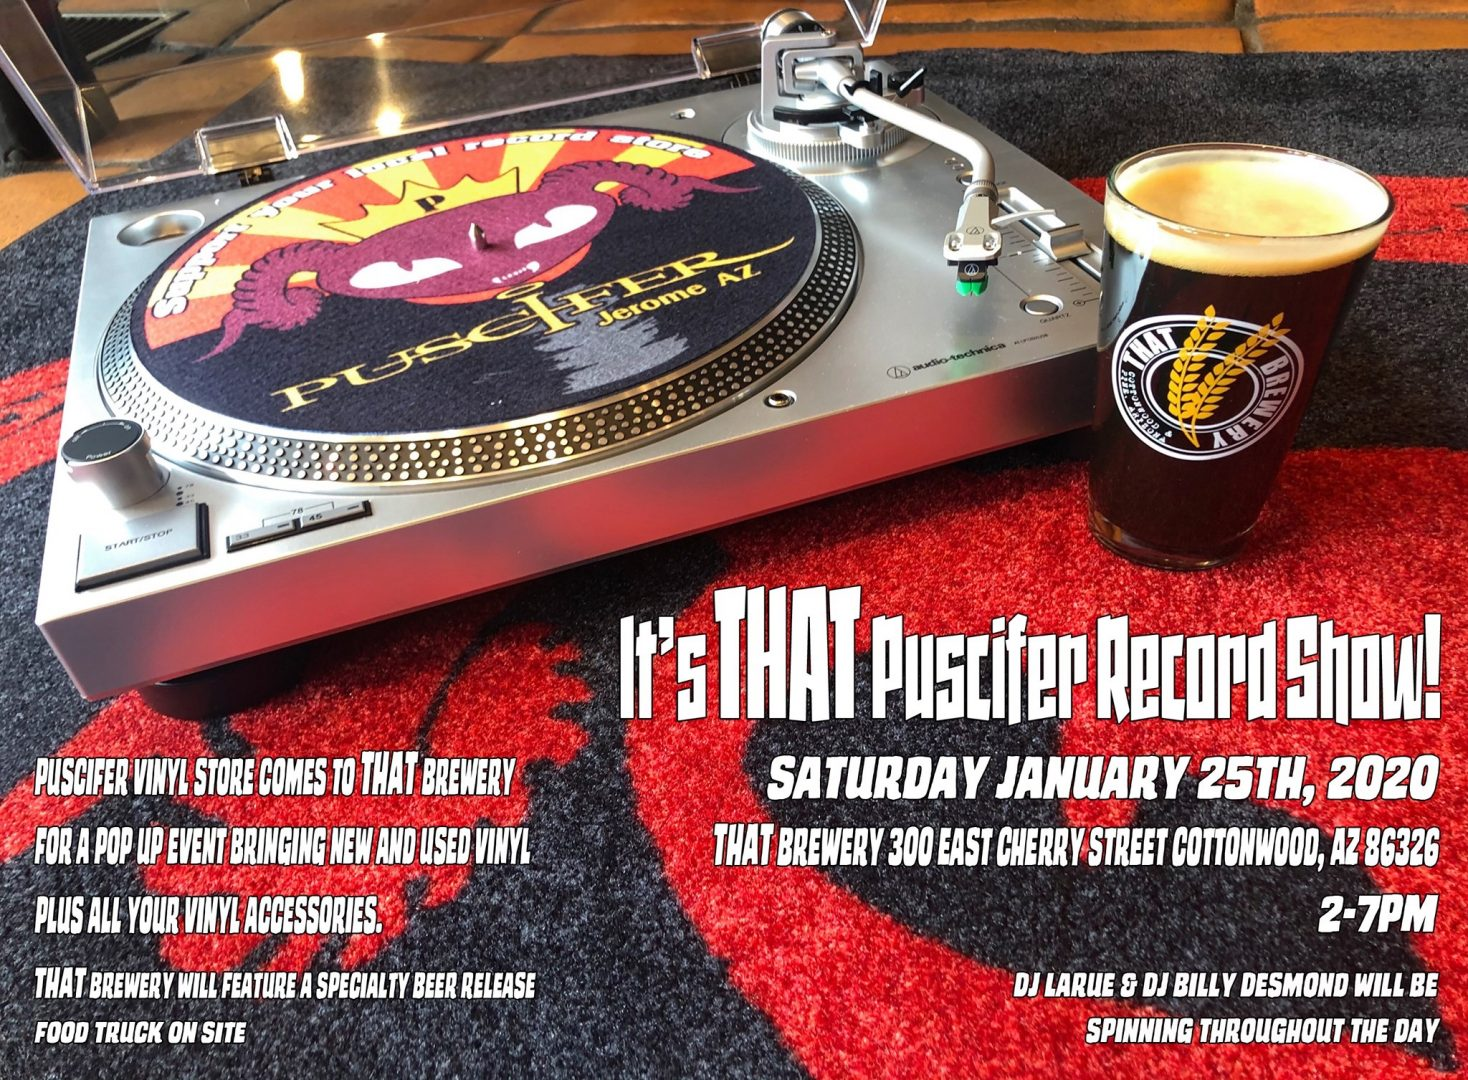 It's THAT Puscifer Record show – pop up record event celebrating upcoming AZ Beer Week